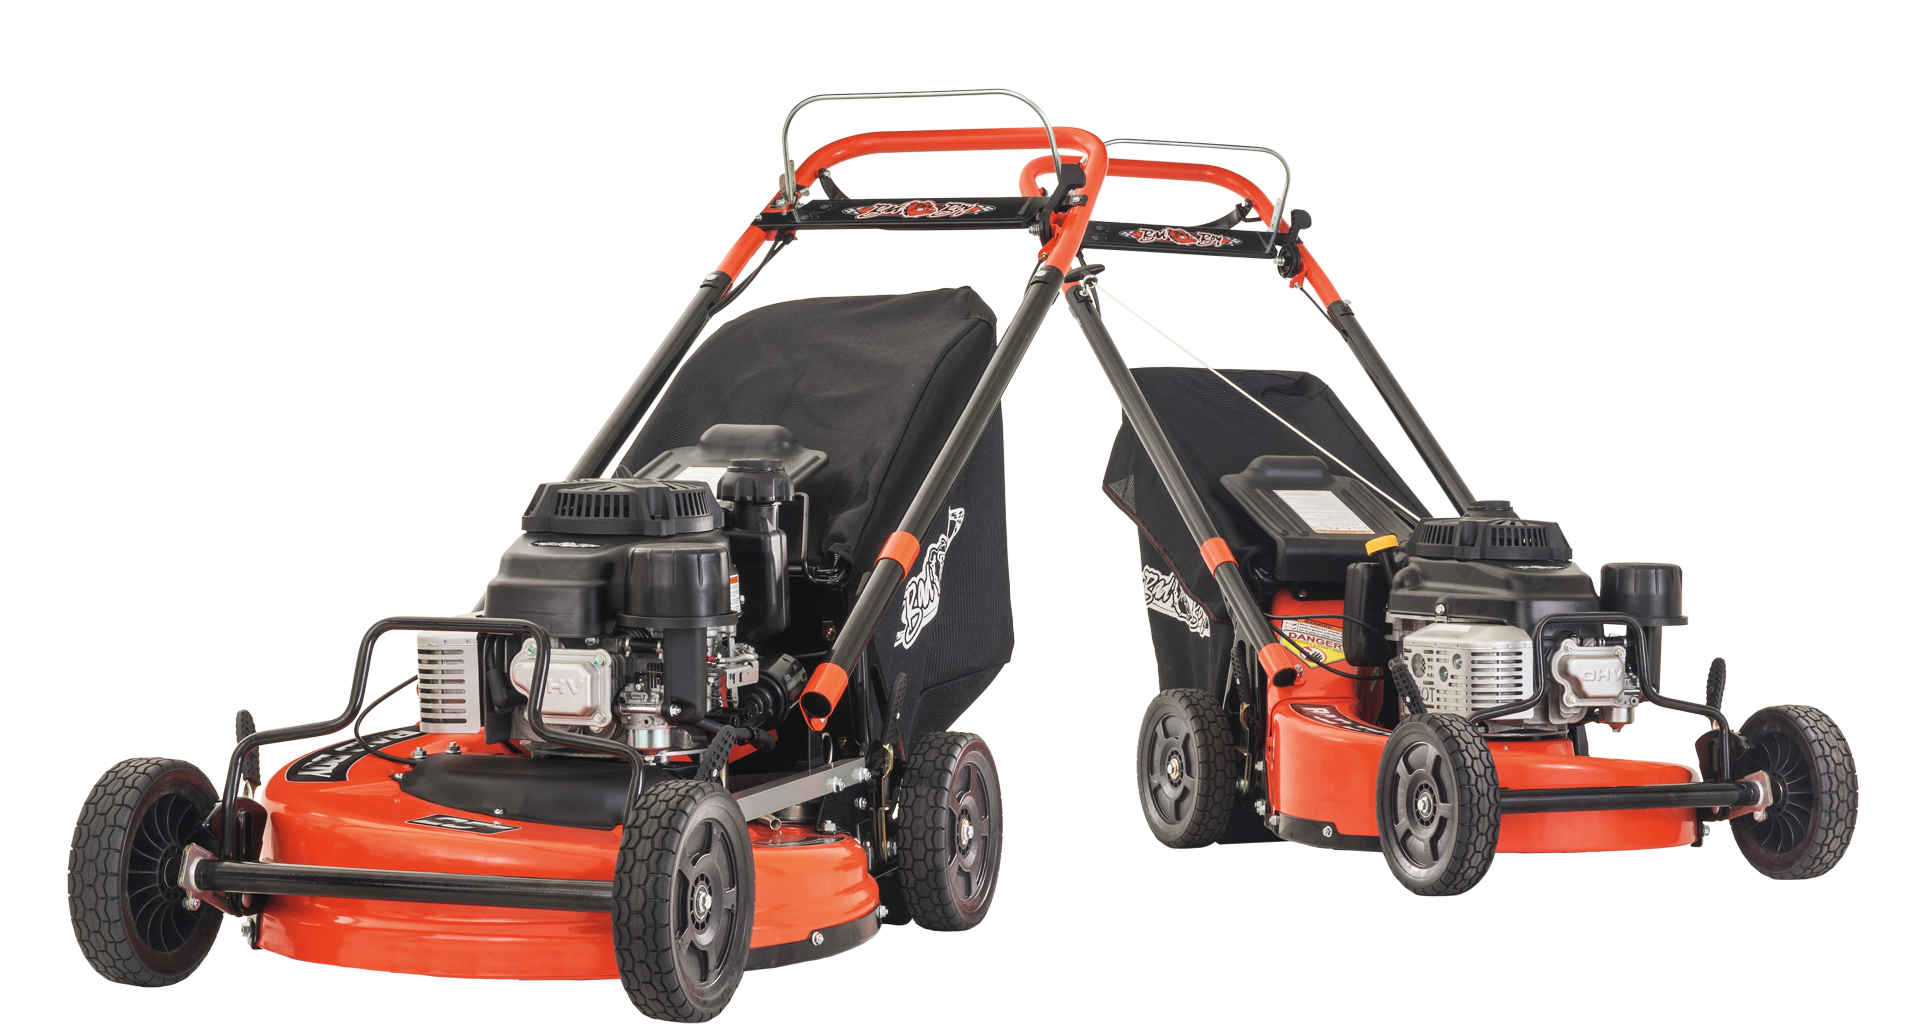 Mowing clipart ride on. Commercial grade self propelled